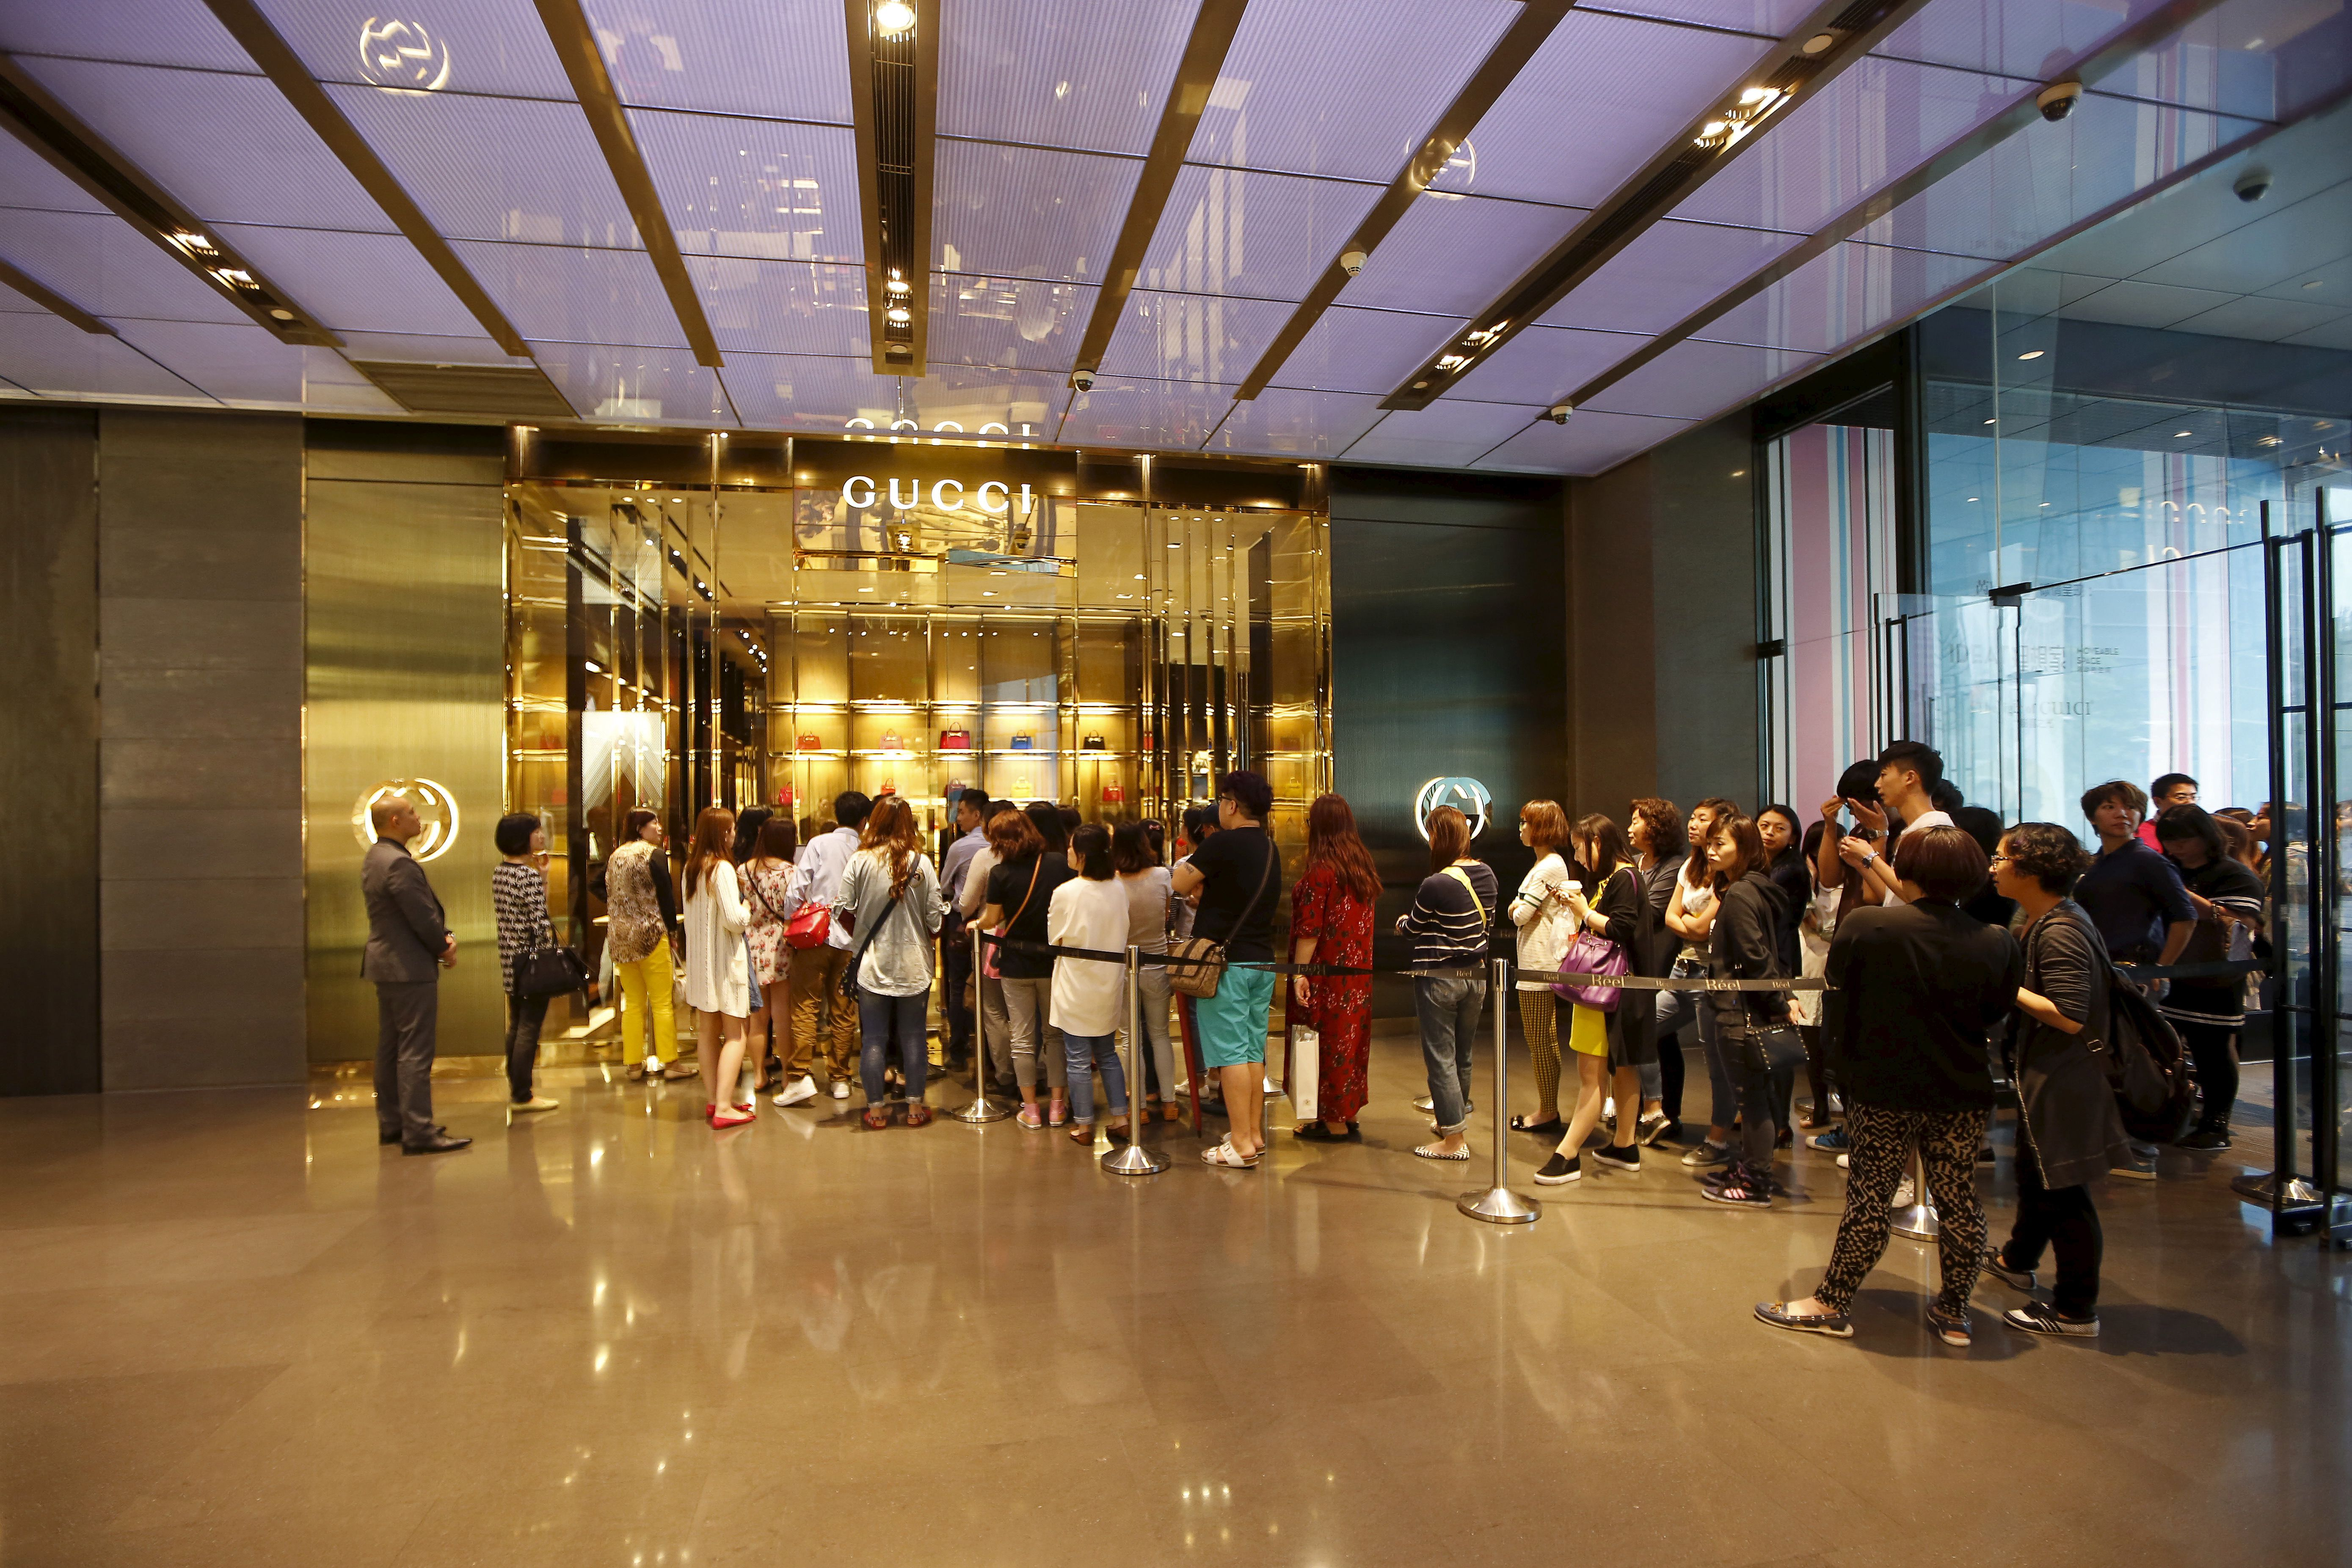 Customers line up as they wait to go inside a Gucci shop at a shopping mall in Shanghai, May 27, 2015.